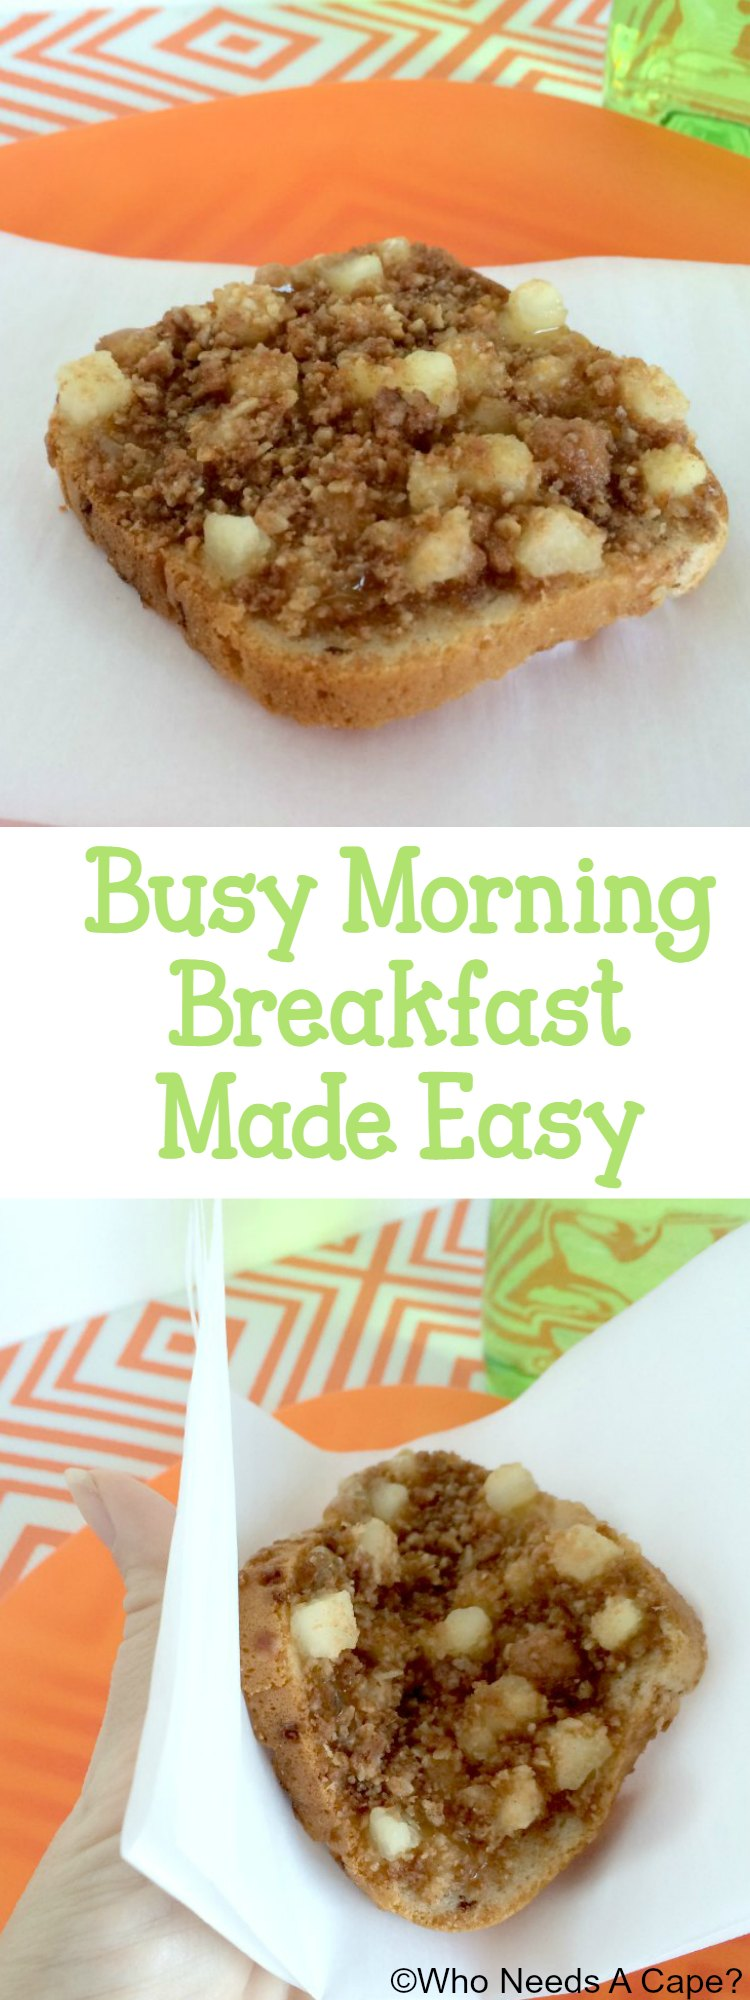 We all need a little help on those crazy mornings! Busy Morning Breakfast Made Easy, see what I stock up on and keep in my freezer to help on those days.